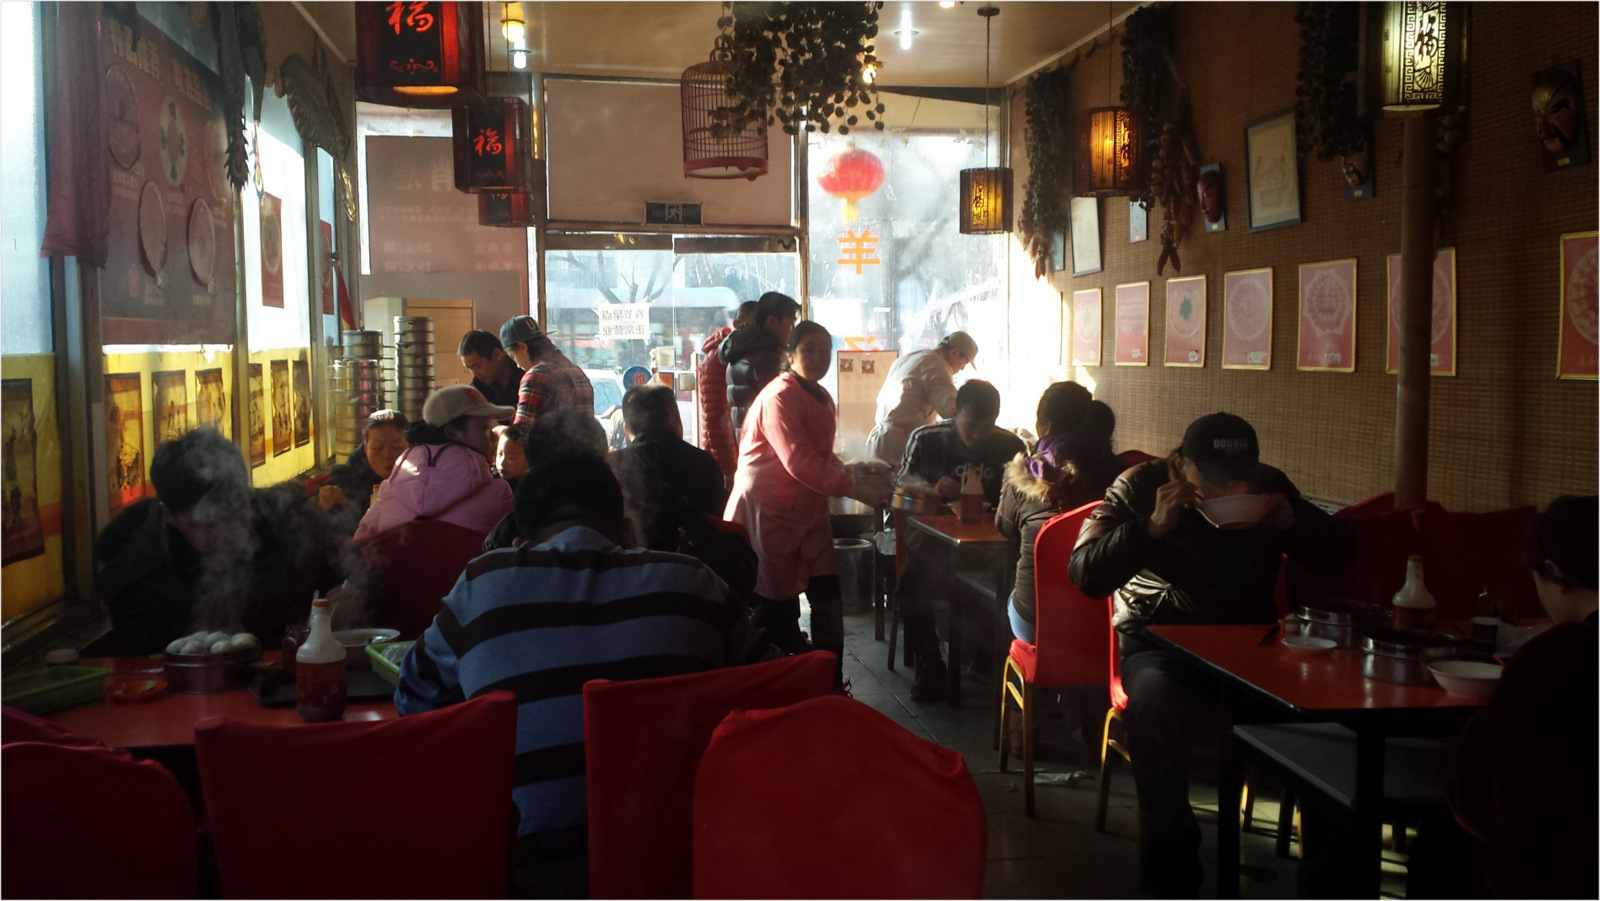 Restaurant Beijing - Breakfast time